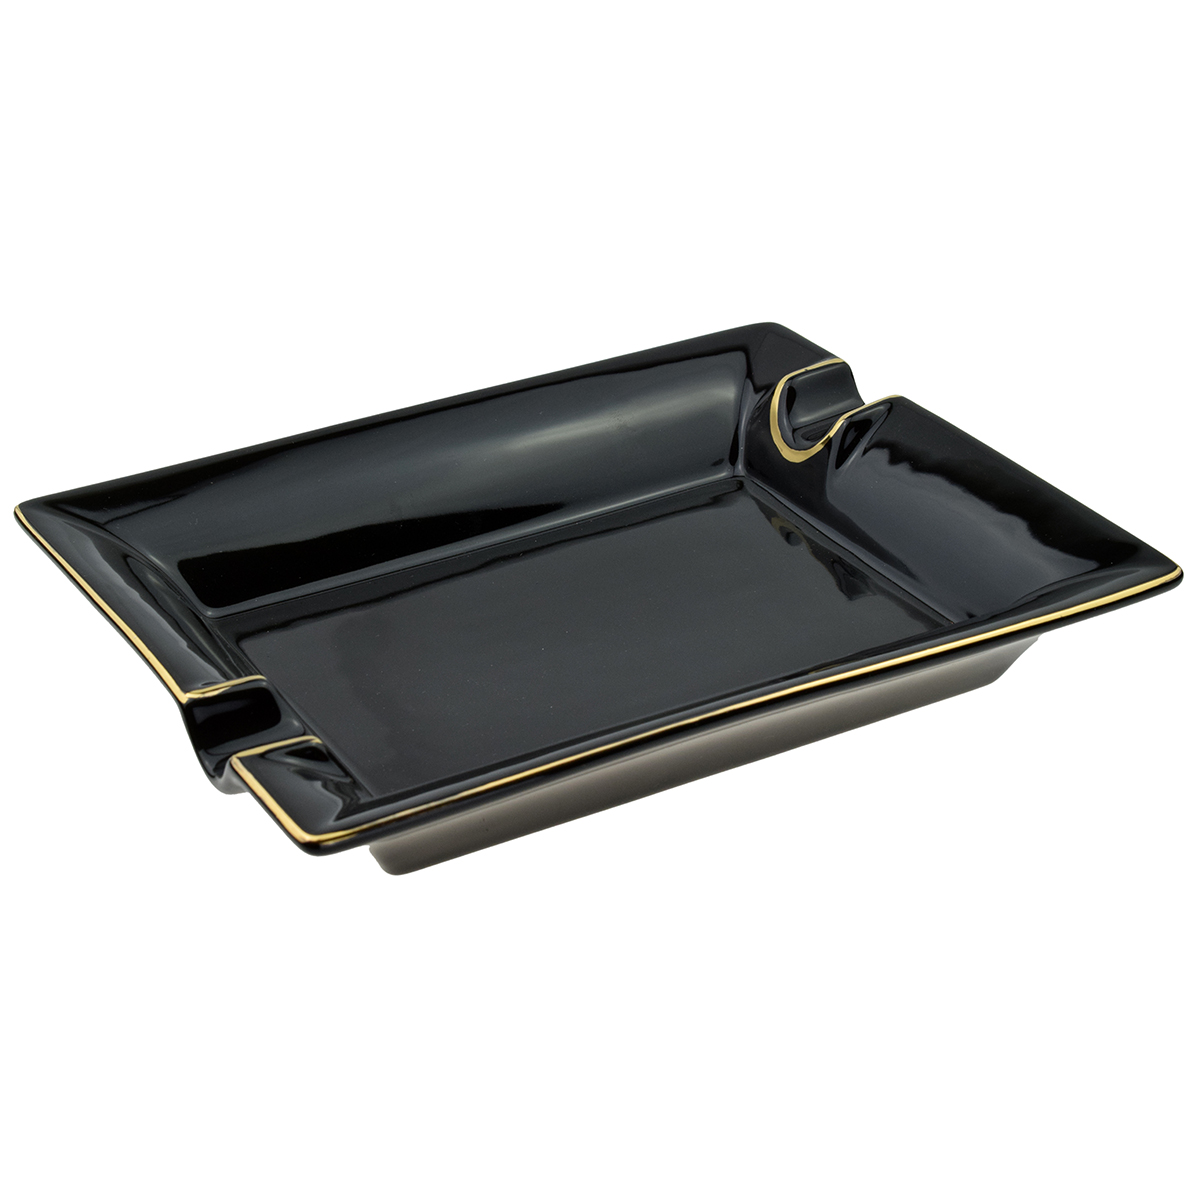 Cigar Ashtray Black And Gold Colour 2 Position Approx 21 x 17cm Boxed 1